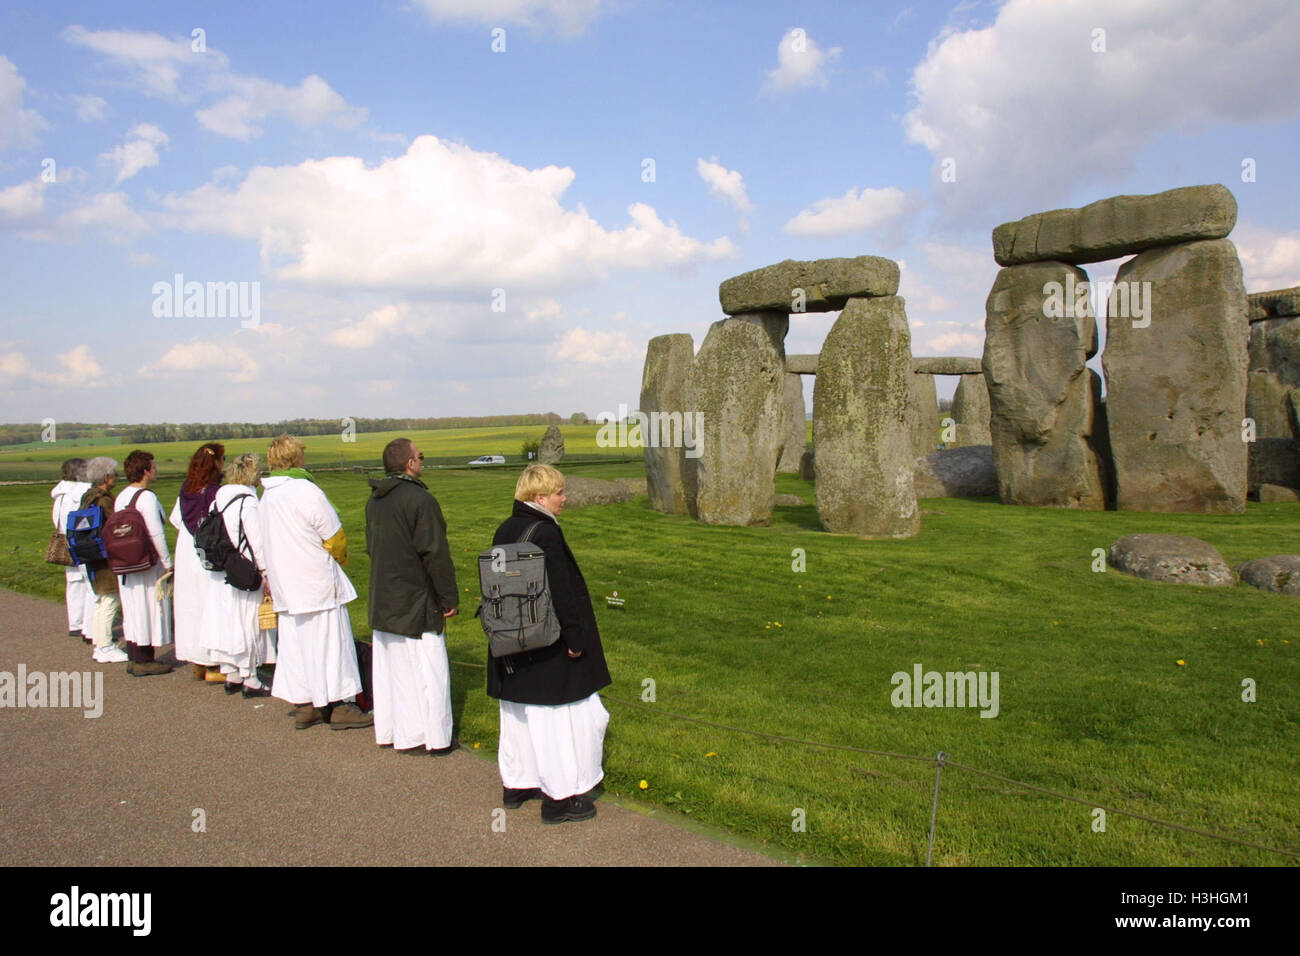 White robed visitors stand in awed silence in front of the 4600 year old sarsen stones of the neolithic monument - Stock Image